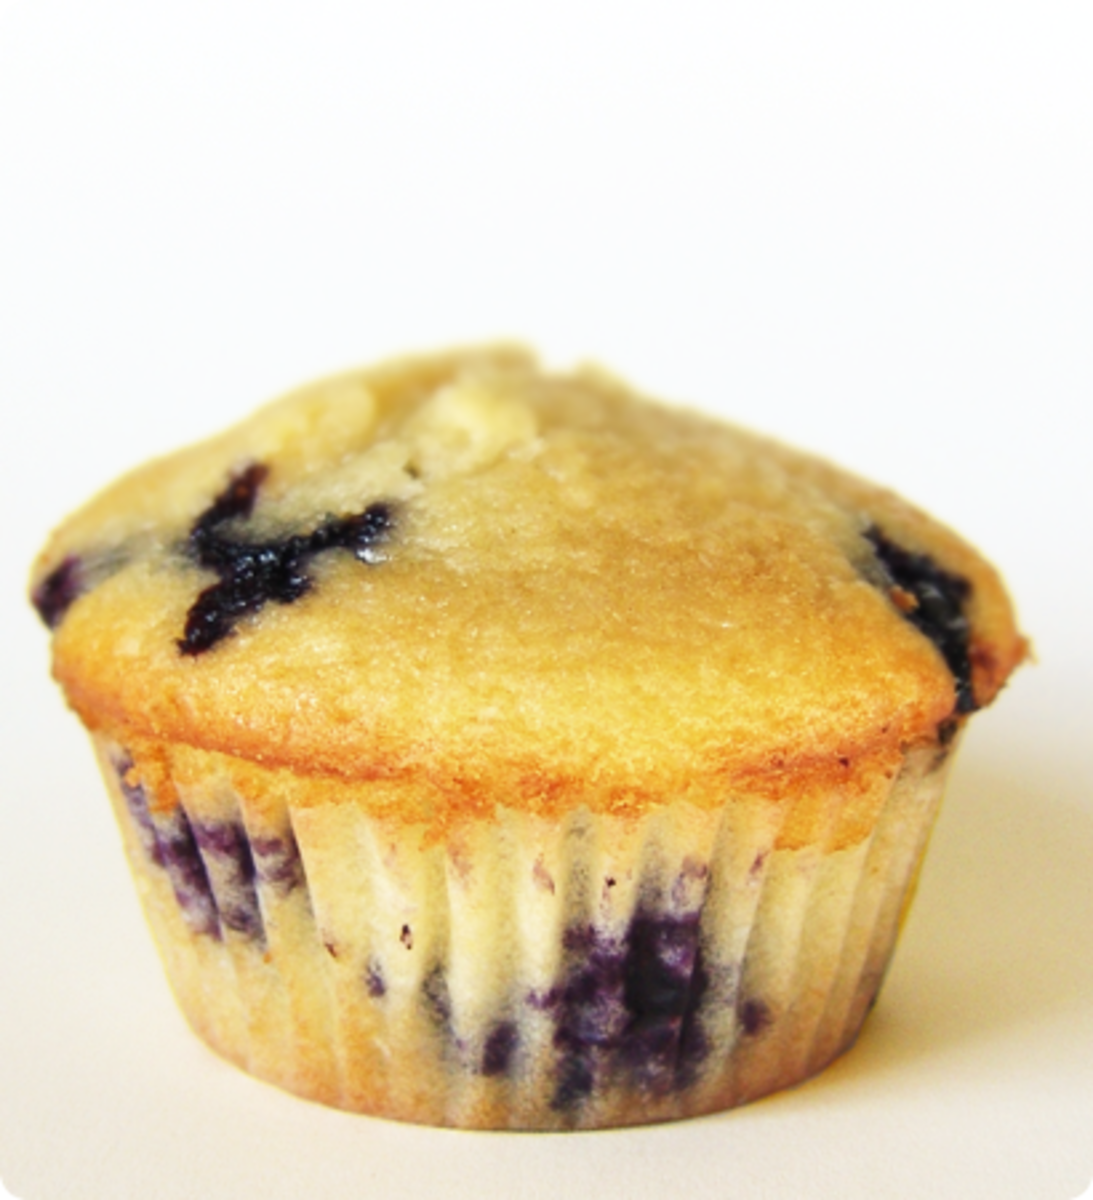 Feel Free To Post Your Comments And Let Us Know What You Think About Blueberry Muffins. Post Your Comment Below.